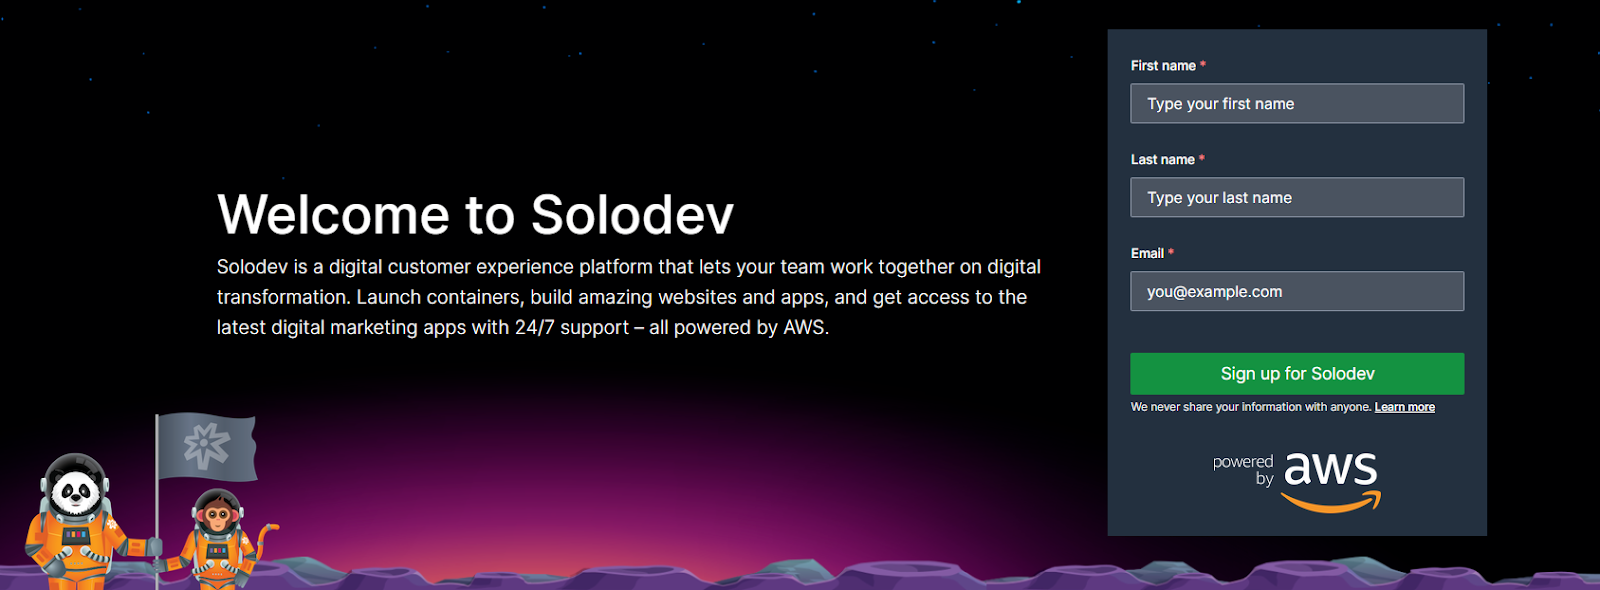 Solodev is a cloud-based Headless CMS that enables teams to work together, deploy quickly, and offers 24/7 support.